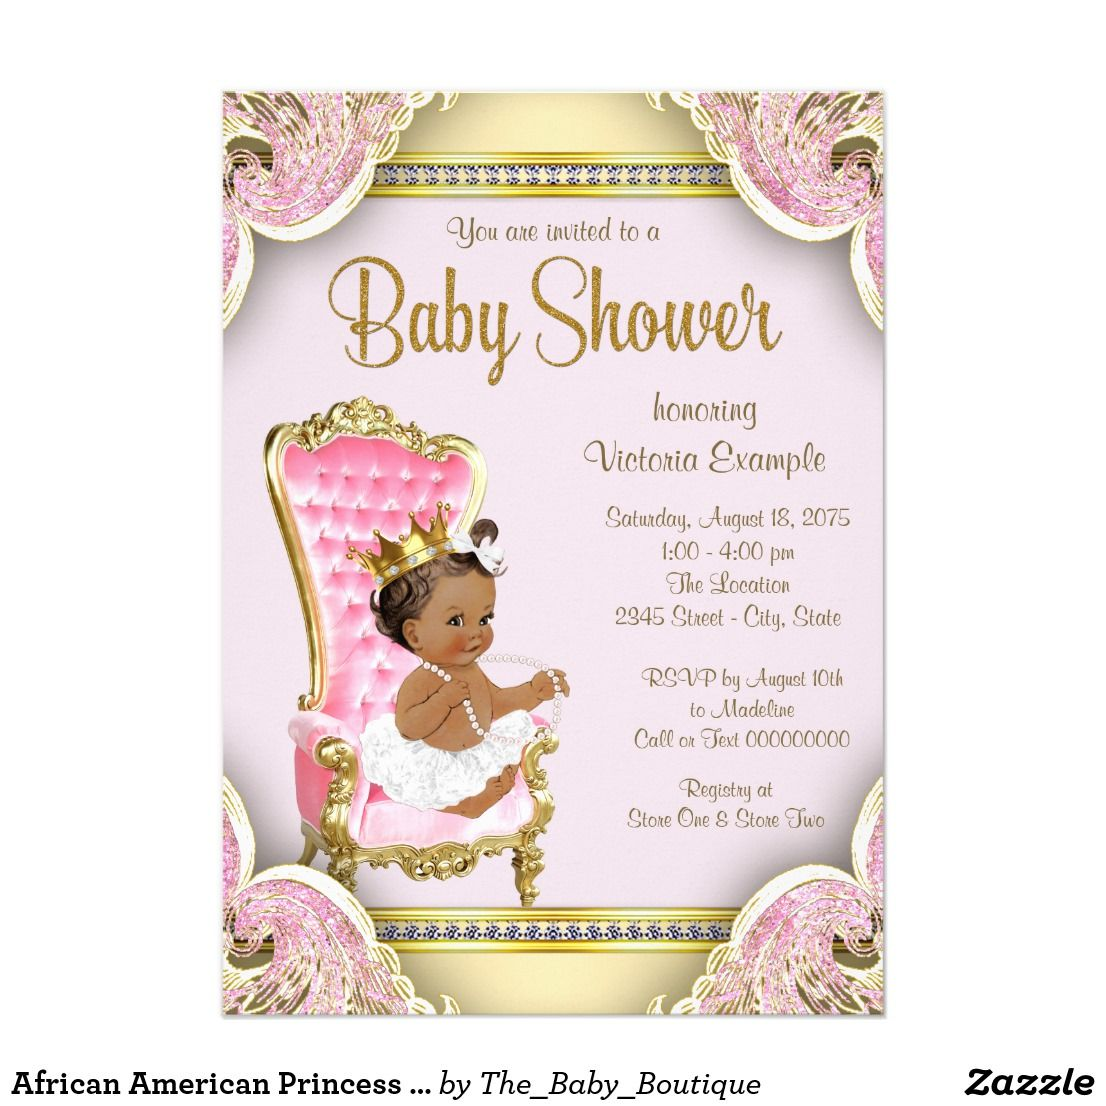 African American Princess Baby Shower Invitations Zazzle